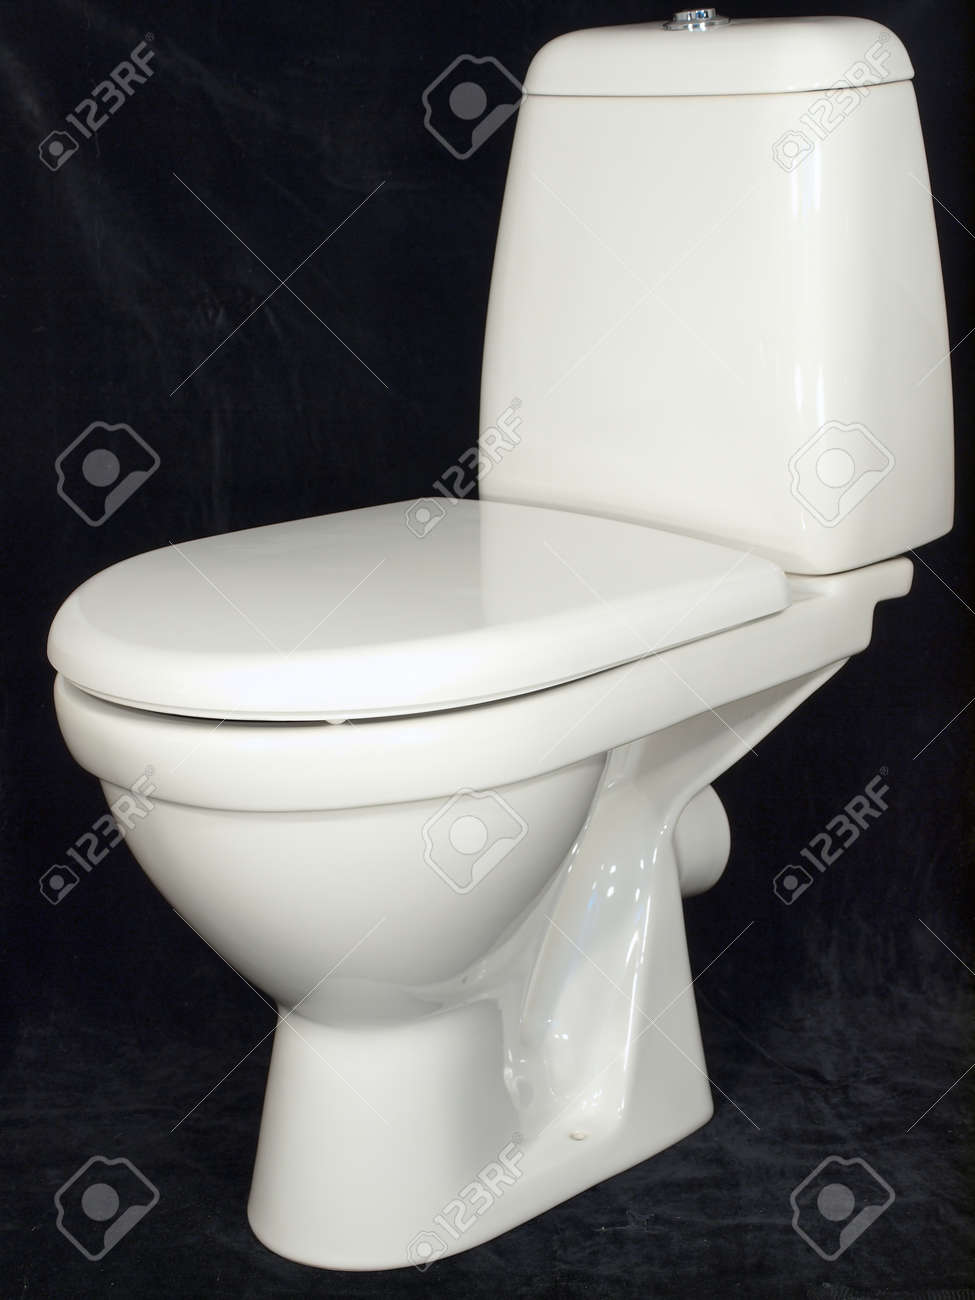 White toilet bowl with the lowered cover on a black background Stock Photo - 9767079